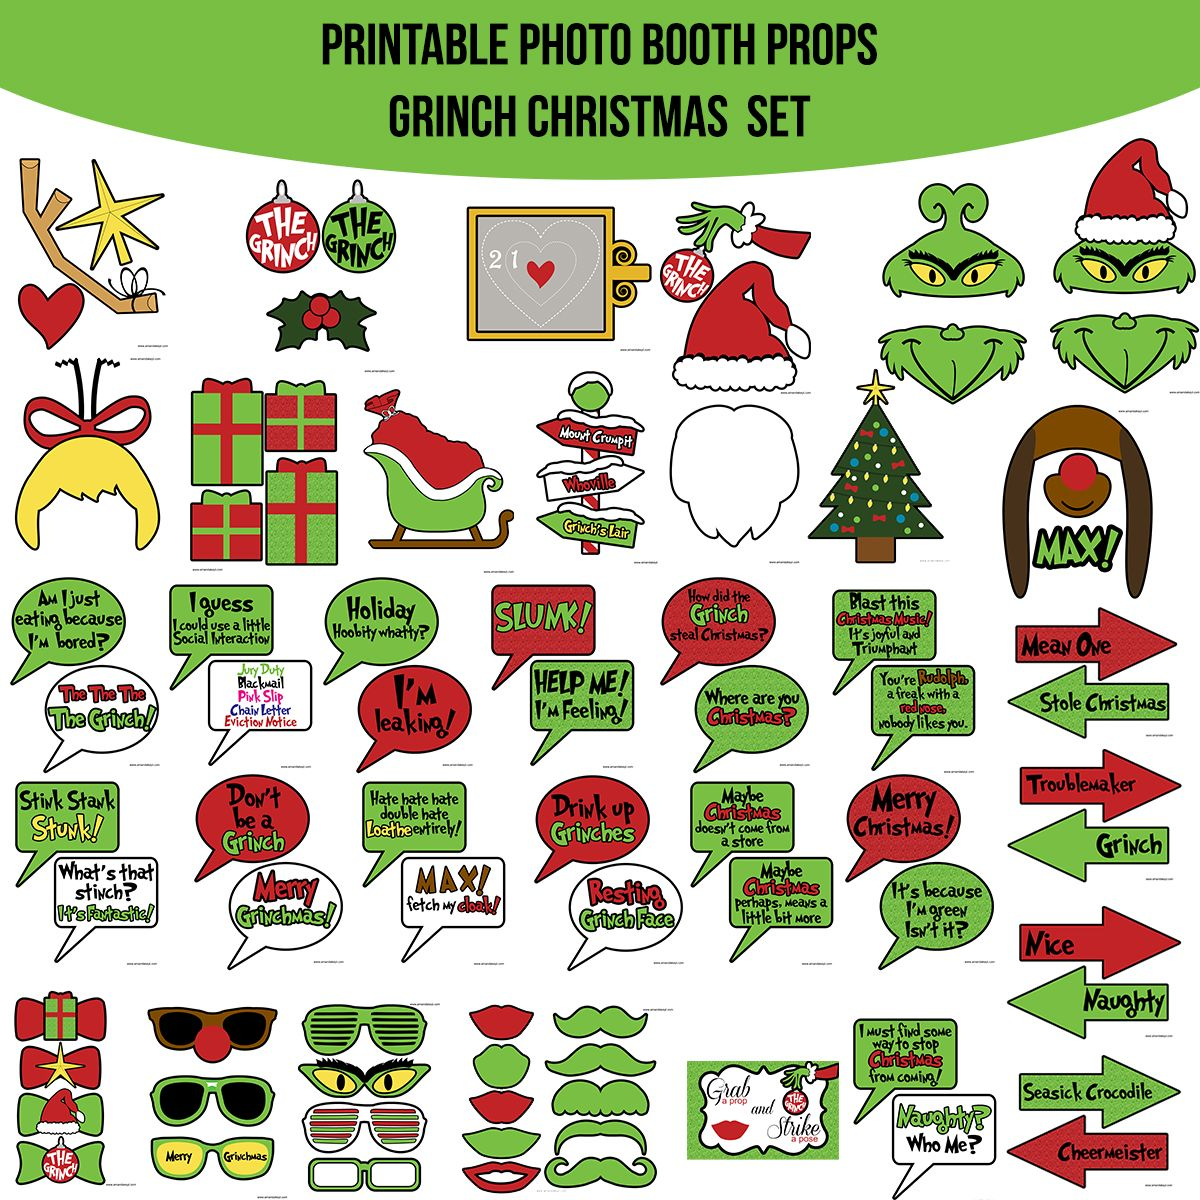 Instant Download Grinch Inspired Christmas Printable Photo